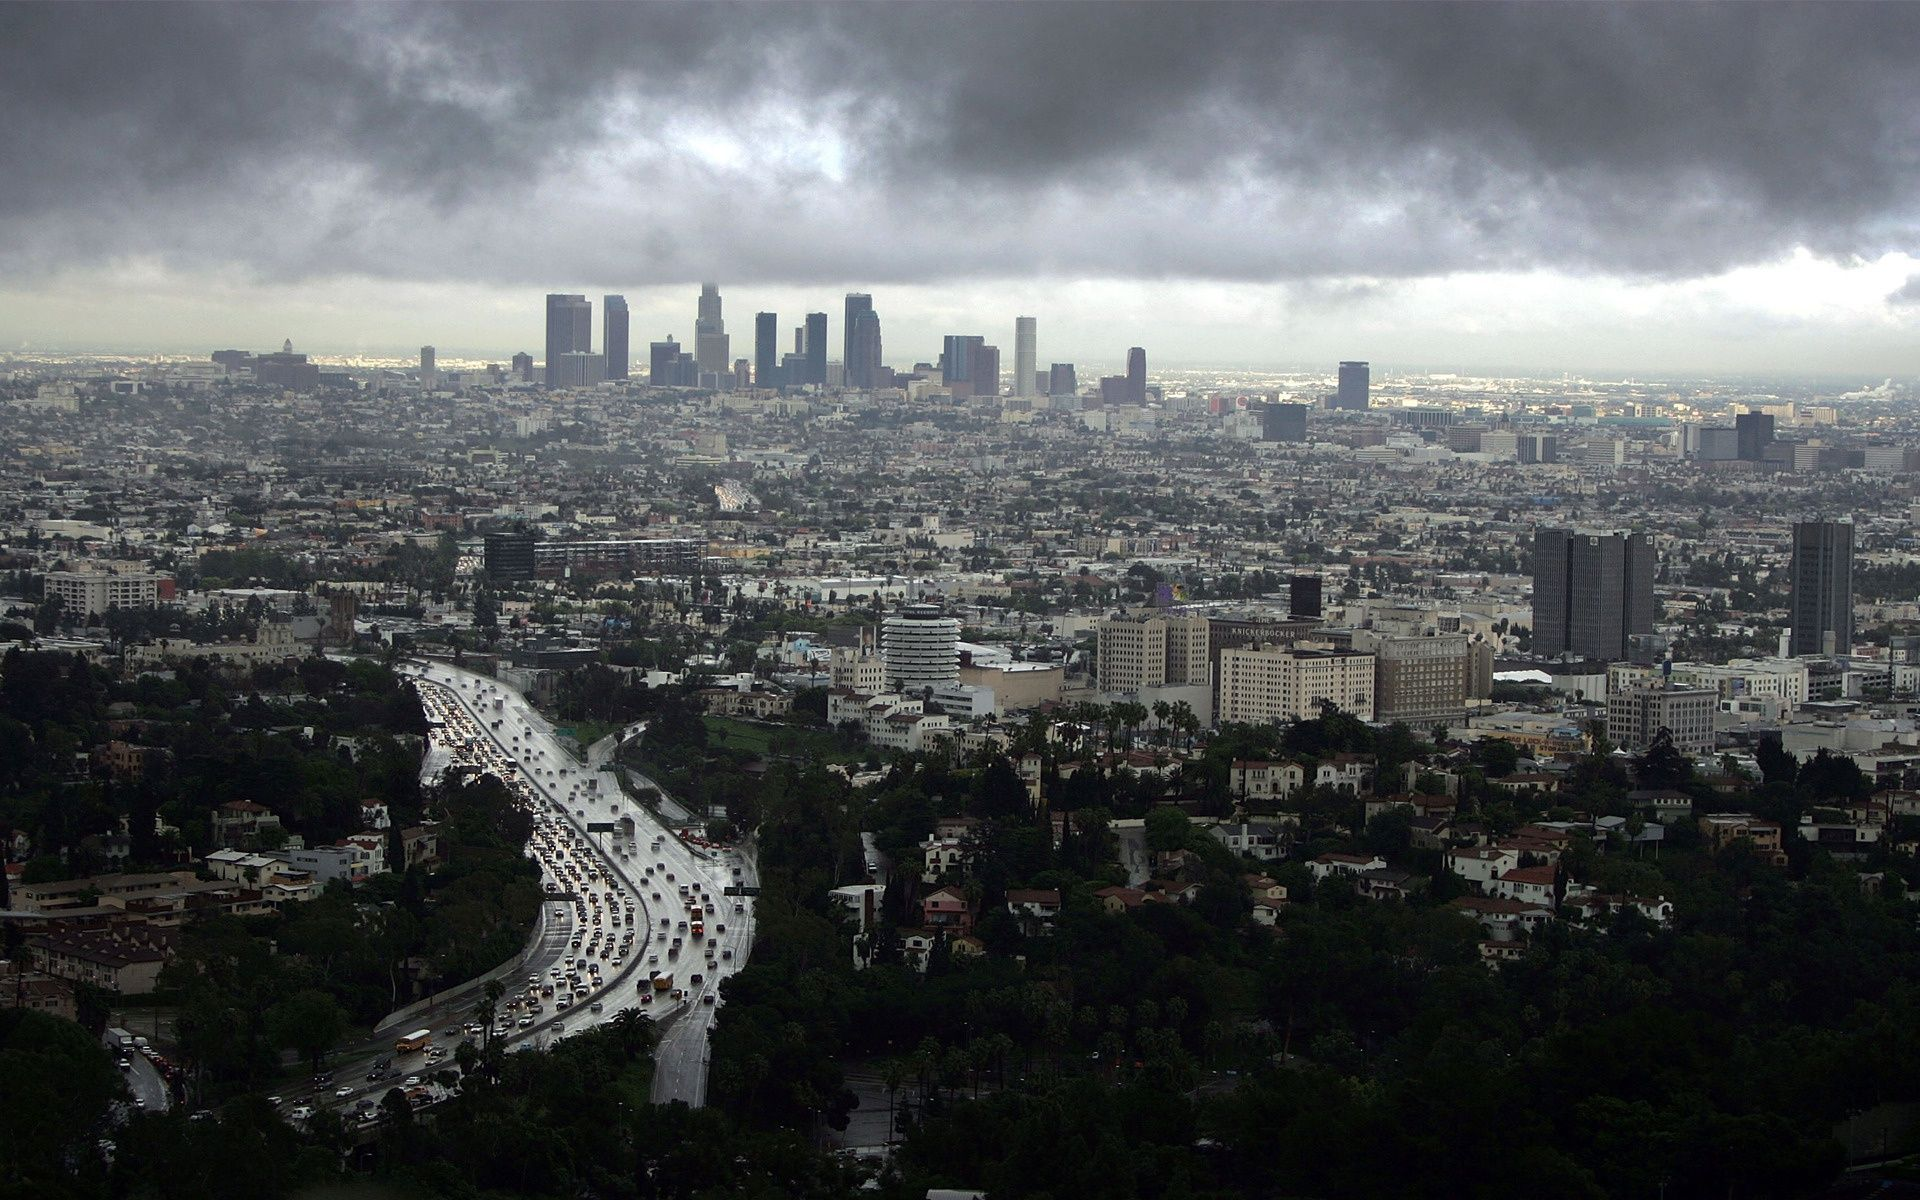 Cloudy Weather City Los Angeles Wallpaper Los Angeles